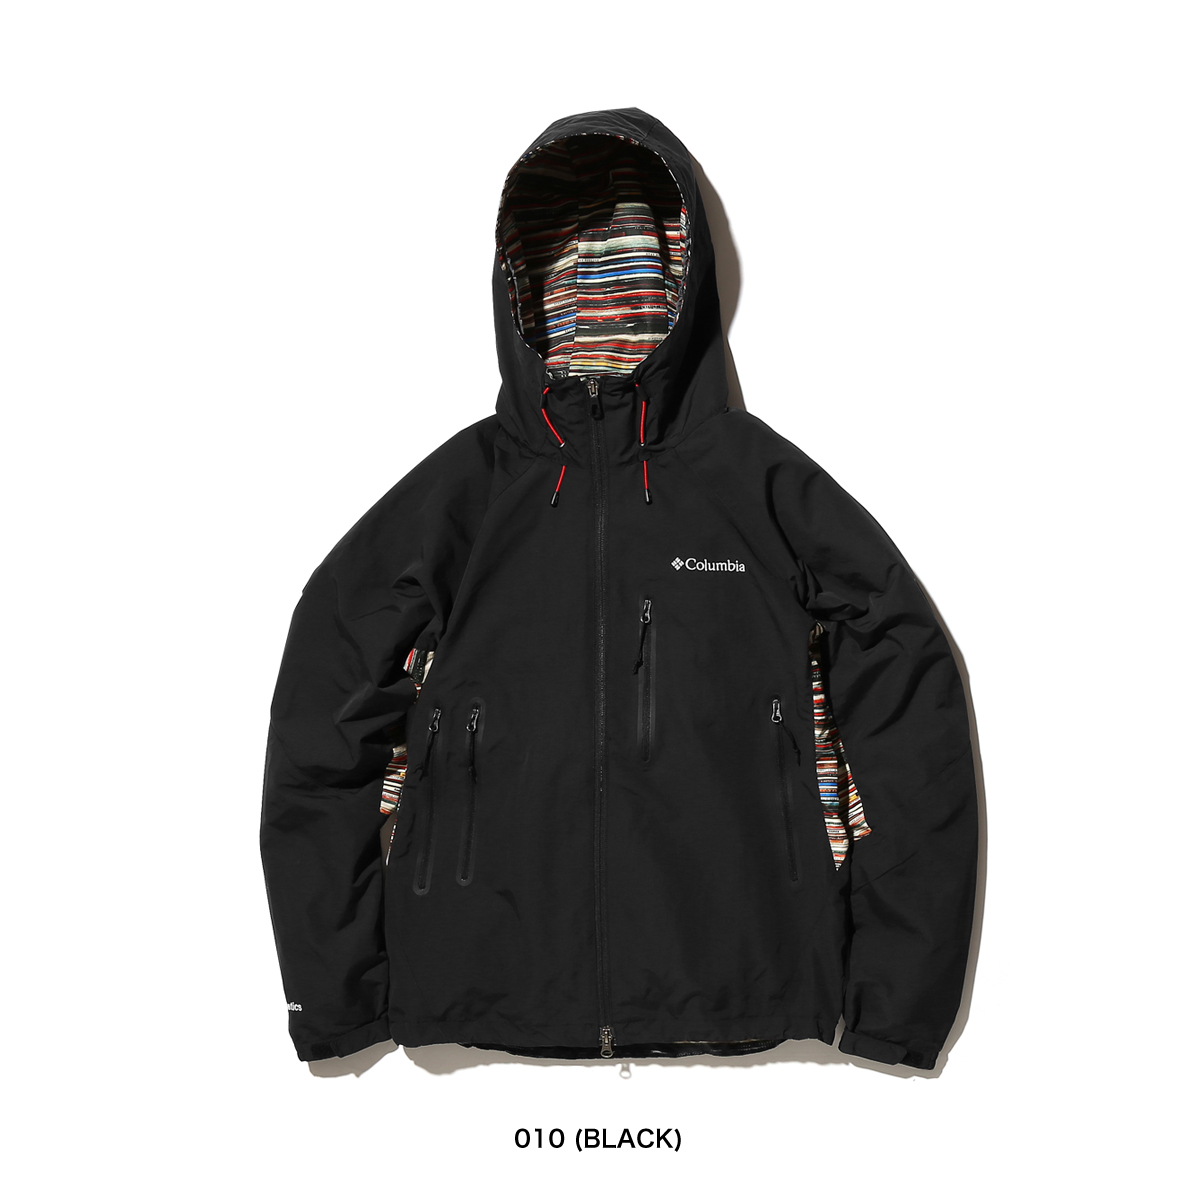 Kinetics×Columbia×Delicious VINYL Pliny Peak DV Jacket(动力学哥伦比亚美味·binirupurinipiku DV茄克)(2色展开)